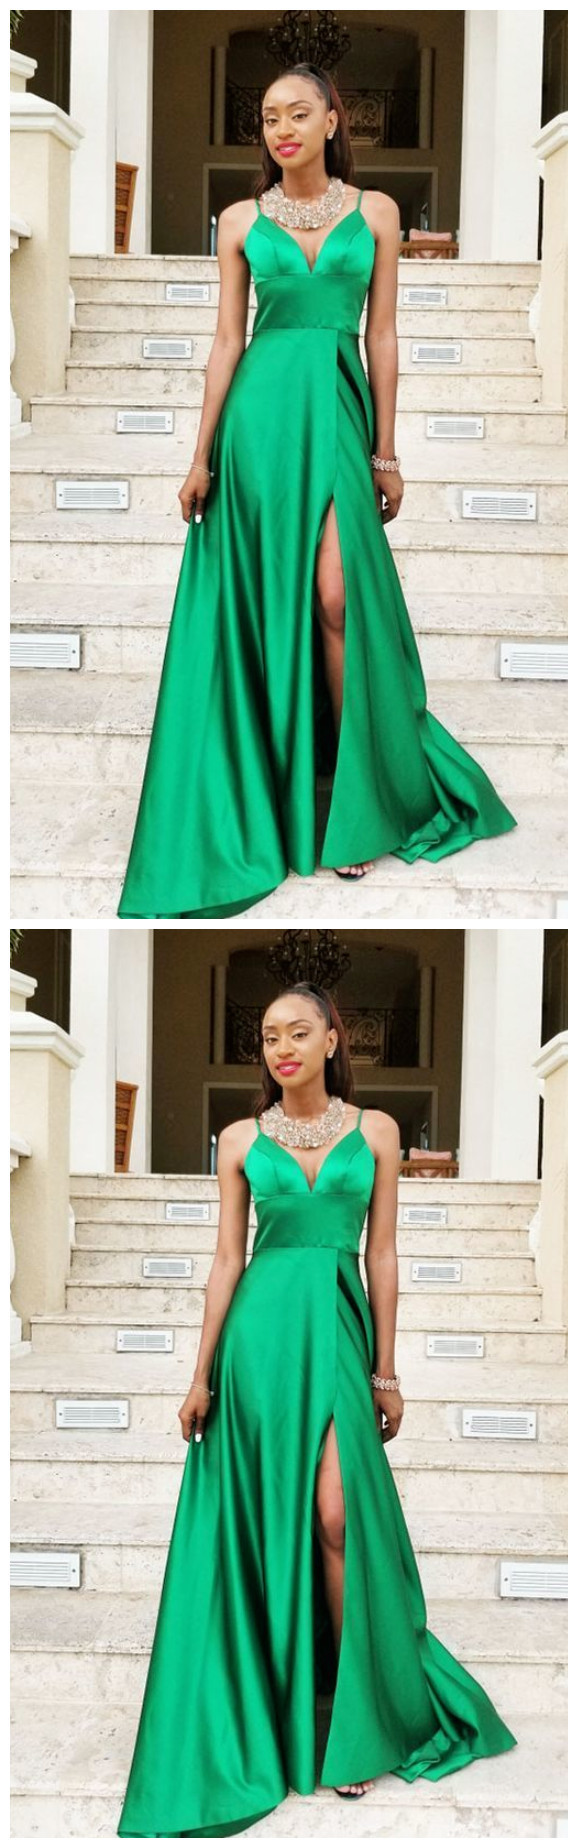 Green Prom Dresses, Long Prom Dress with Split, Simple Prom Dresses